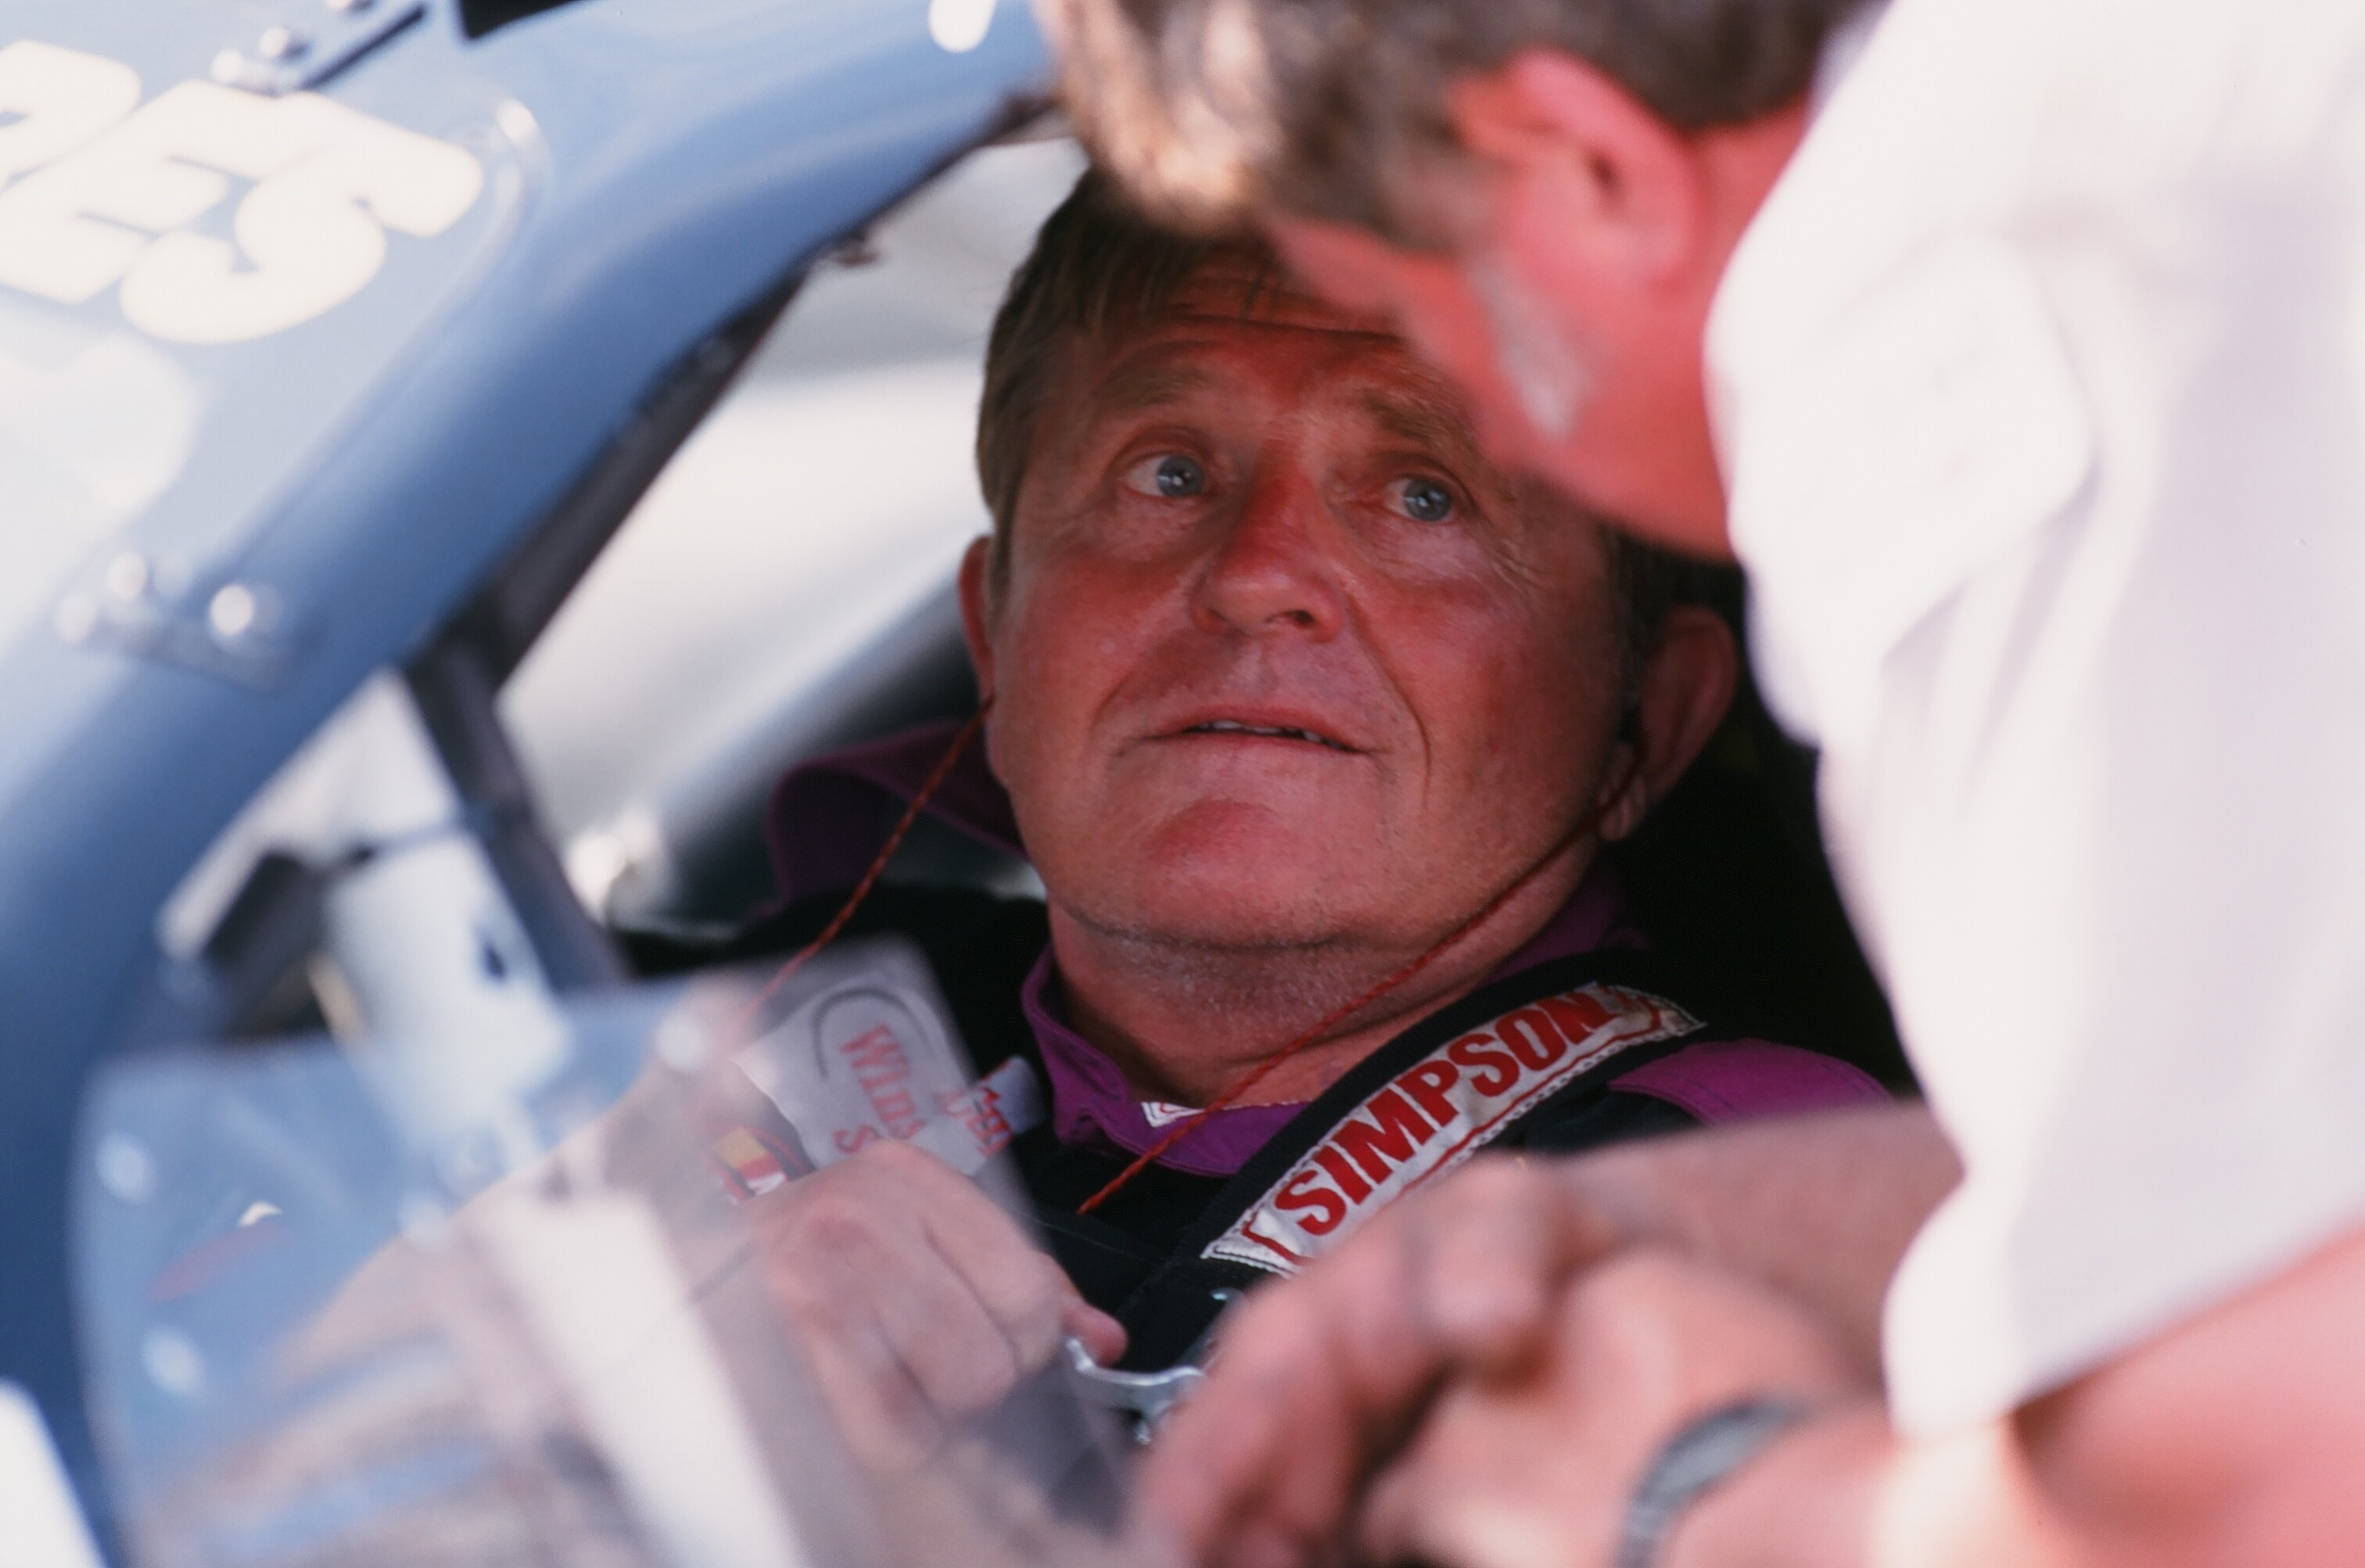 Former NFL head coach Jerry Glanville is also a big racecar driver